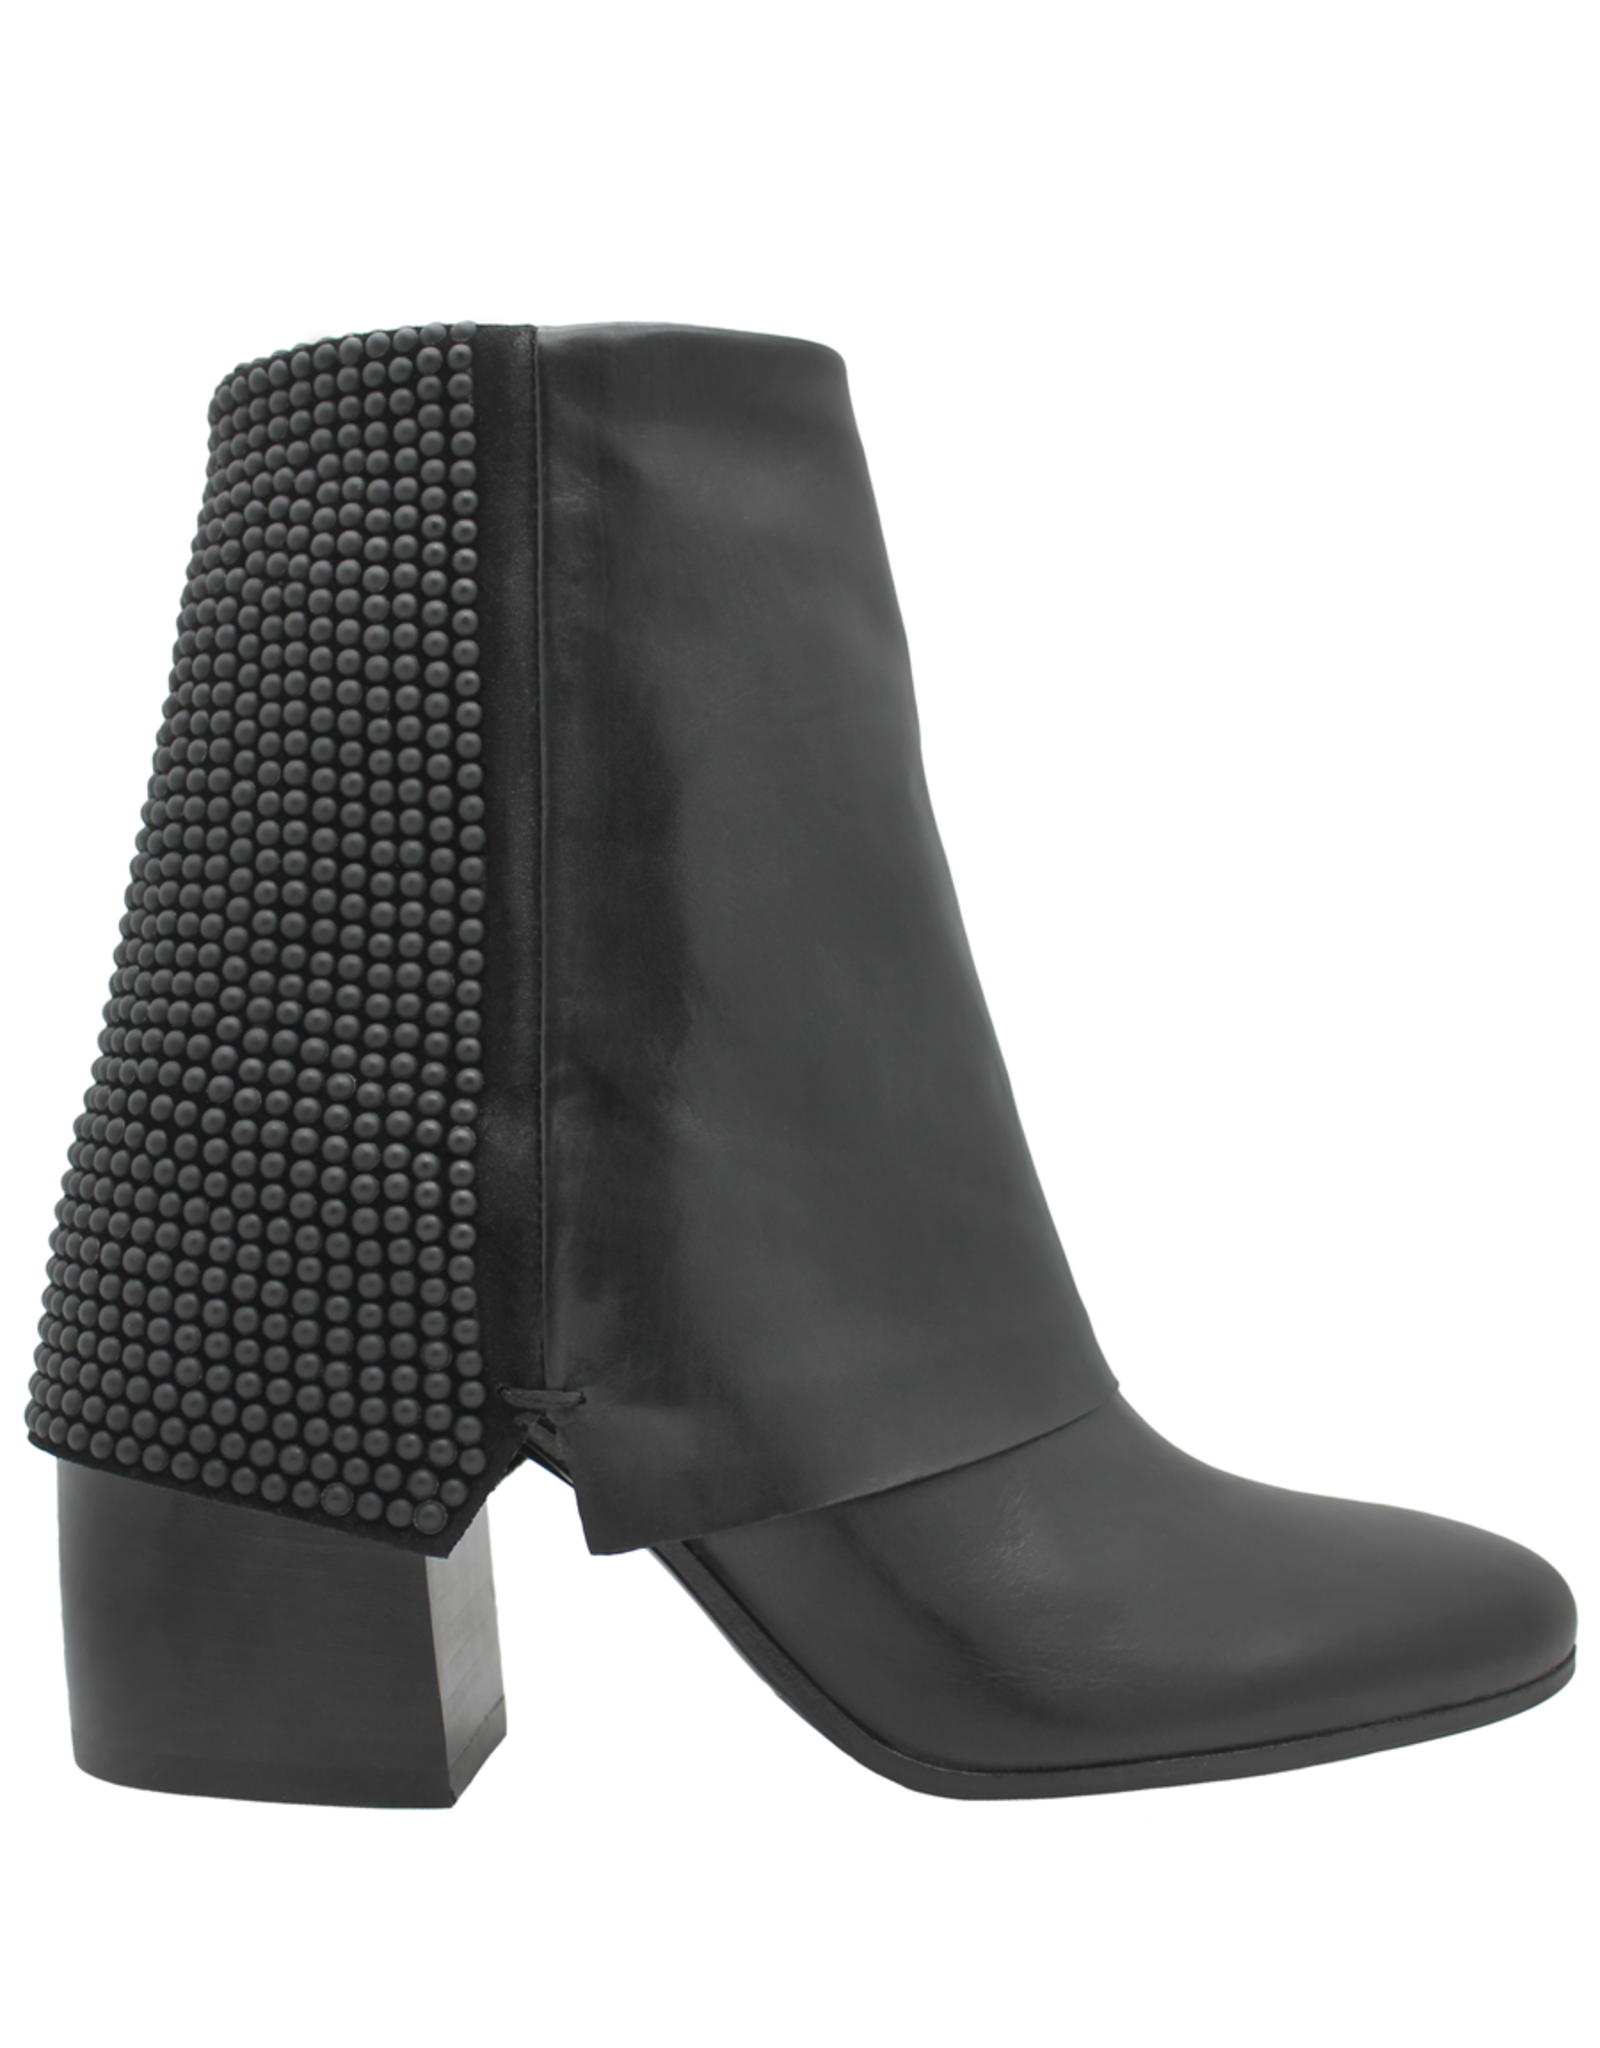 Now Now Black Fold Over Ankle Boot With Dots 6008